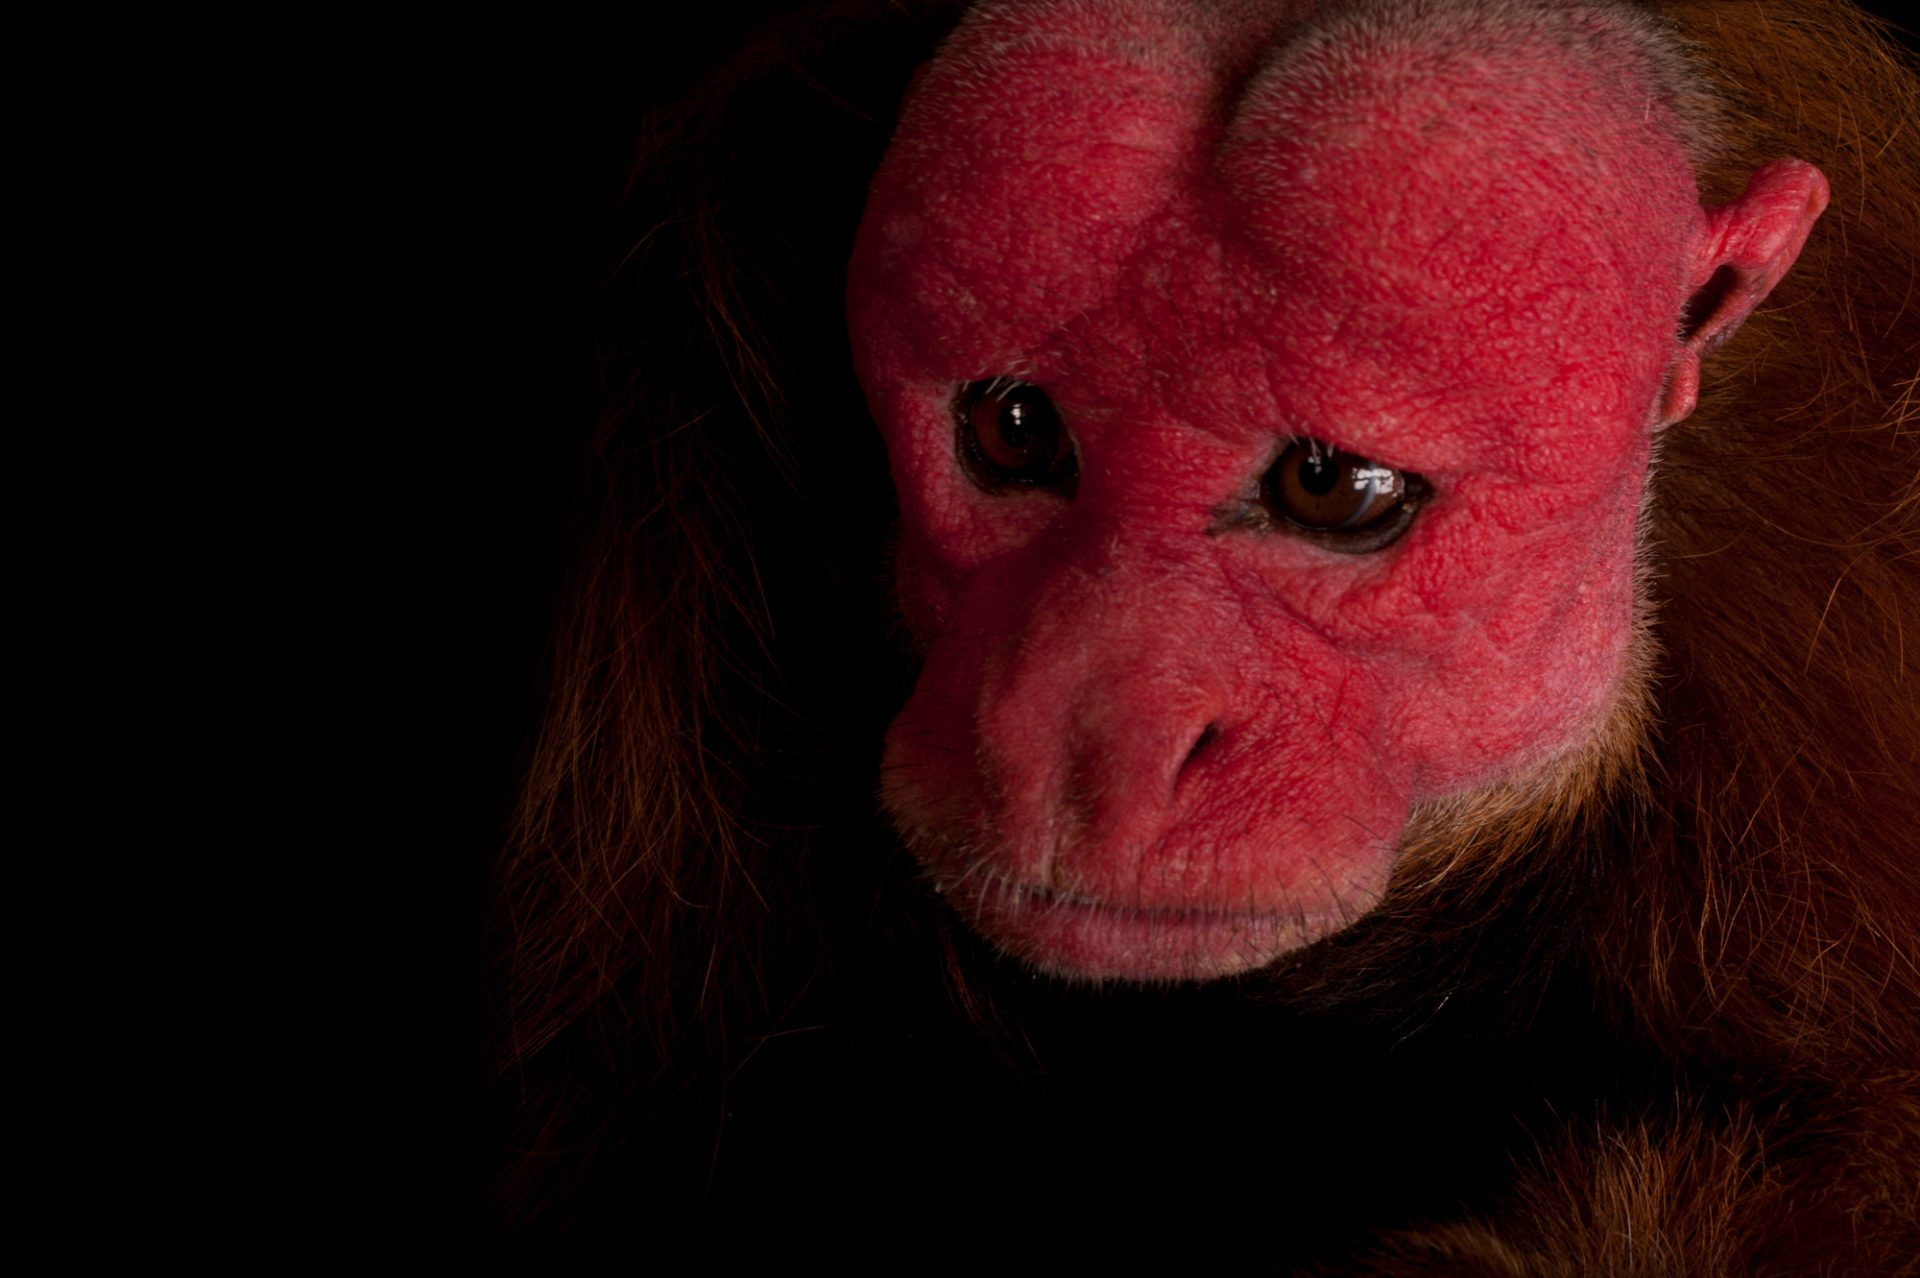 A vulnerable red uakari monkey (Cacajao calvus ucayalii).